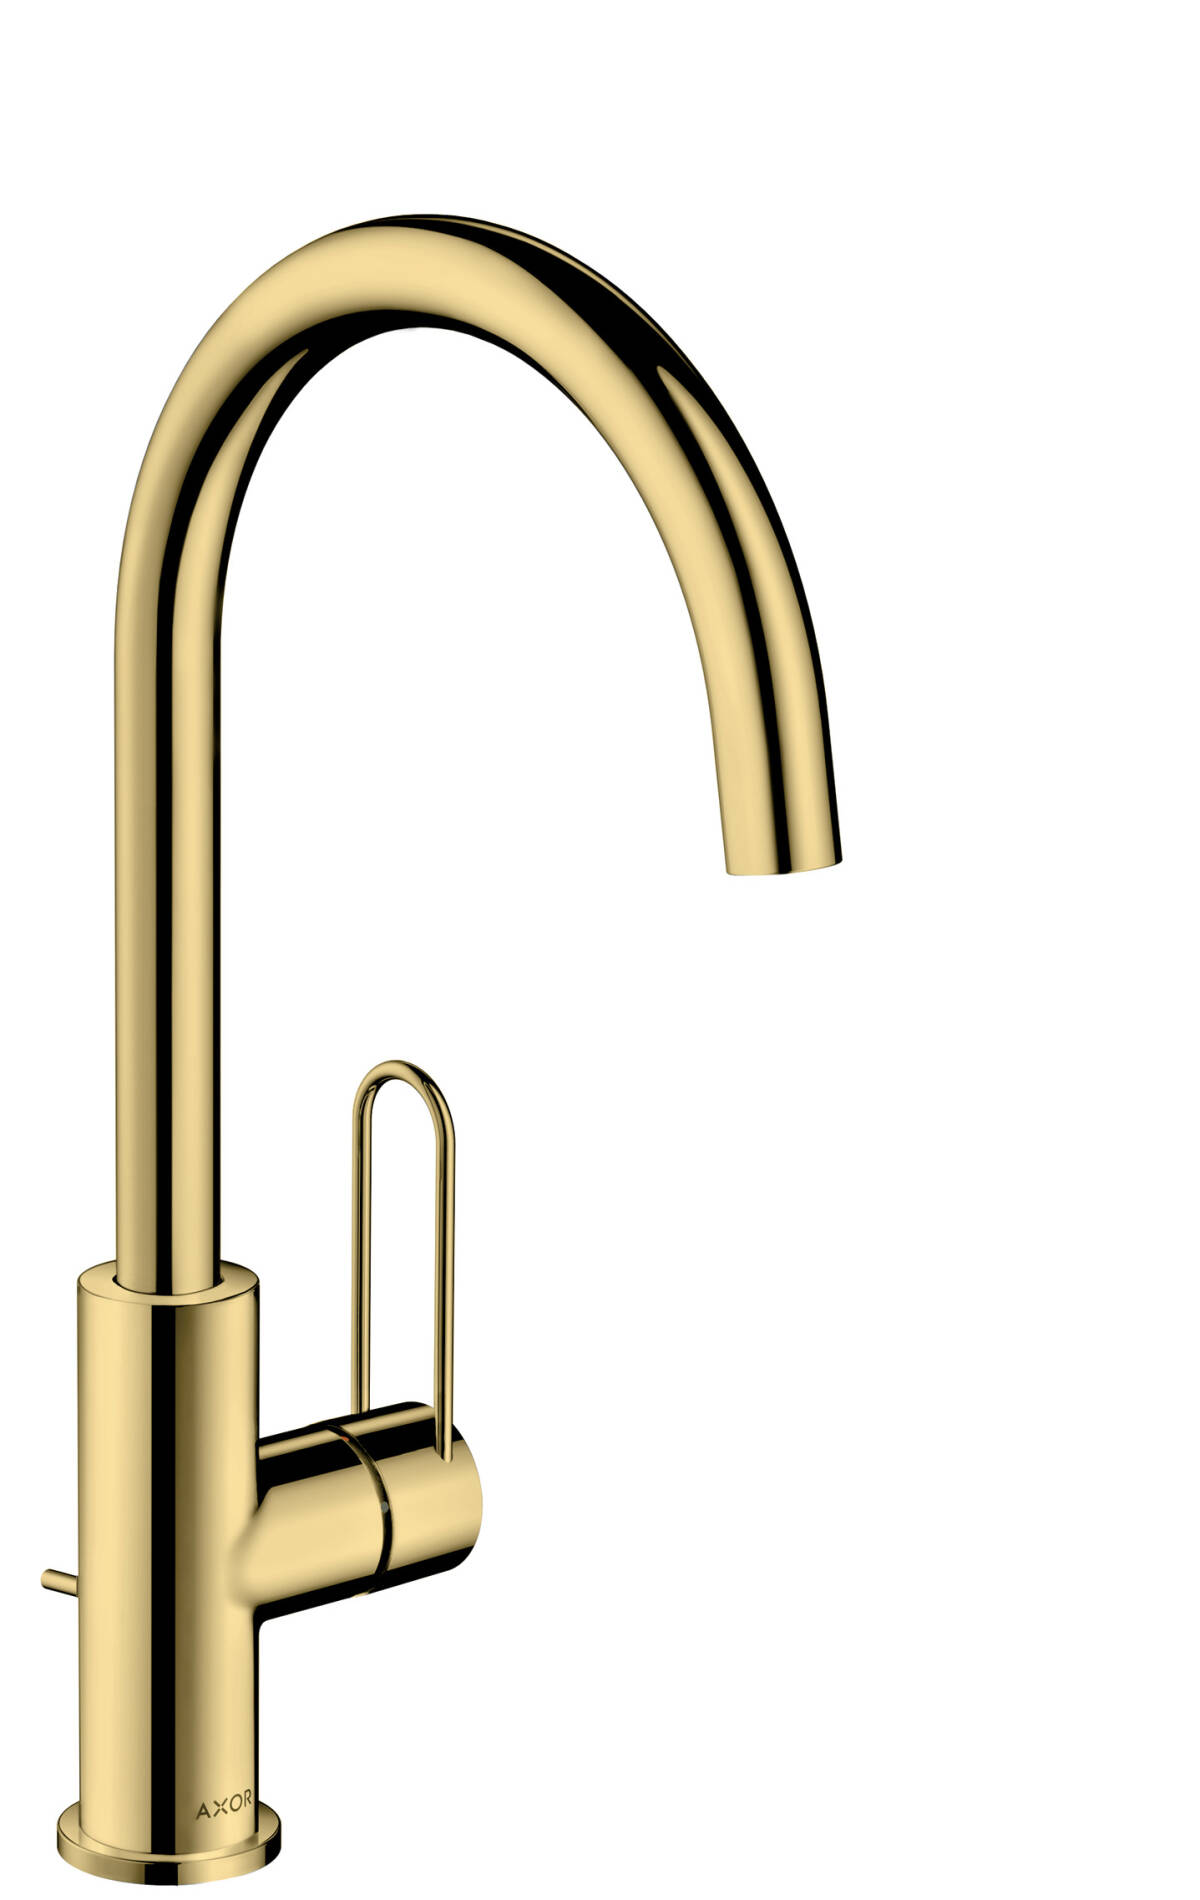 Single lever basin mixer 240 with loop handle and pop-up waste set, Polished Brass, 38036930